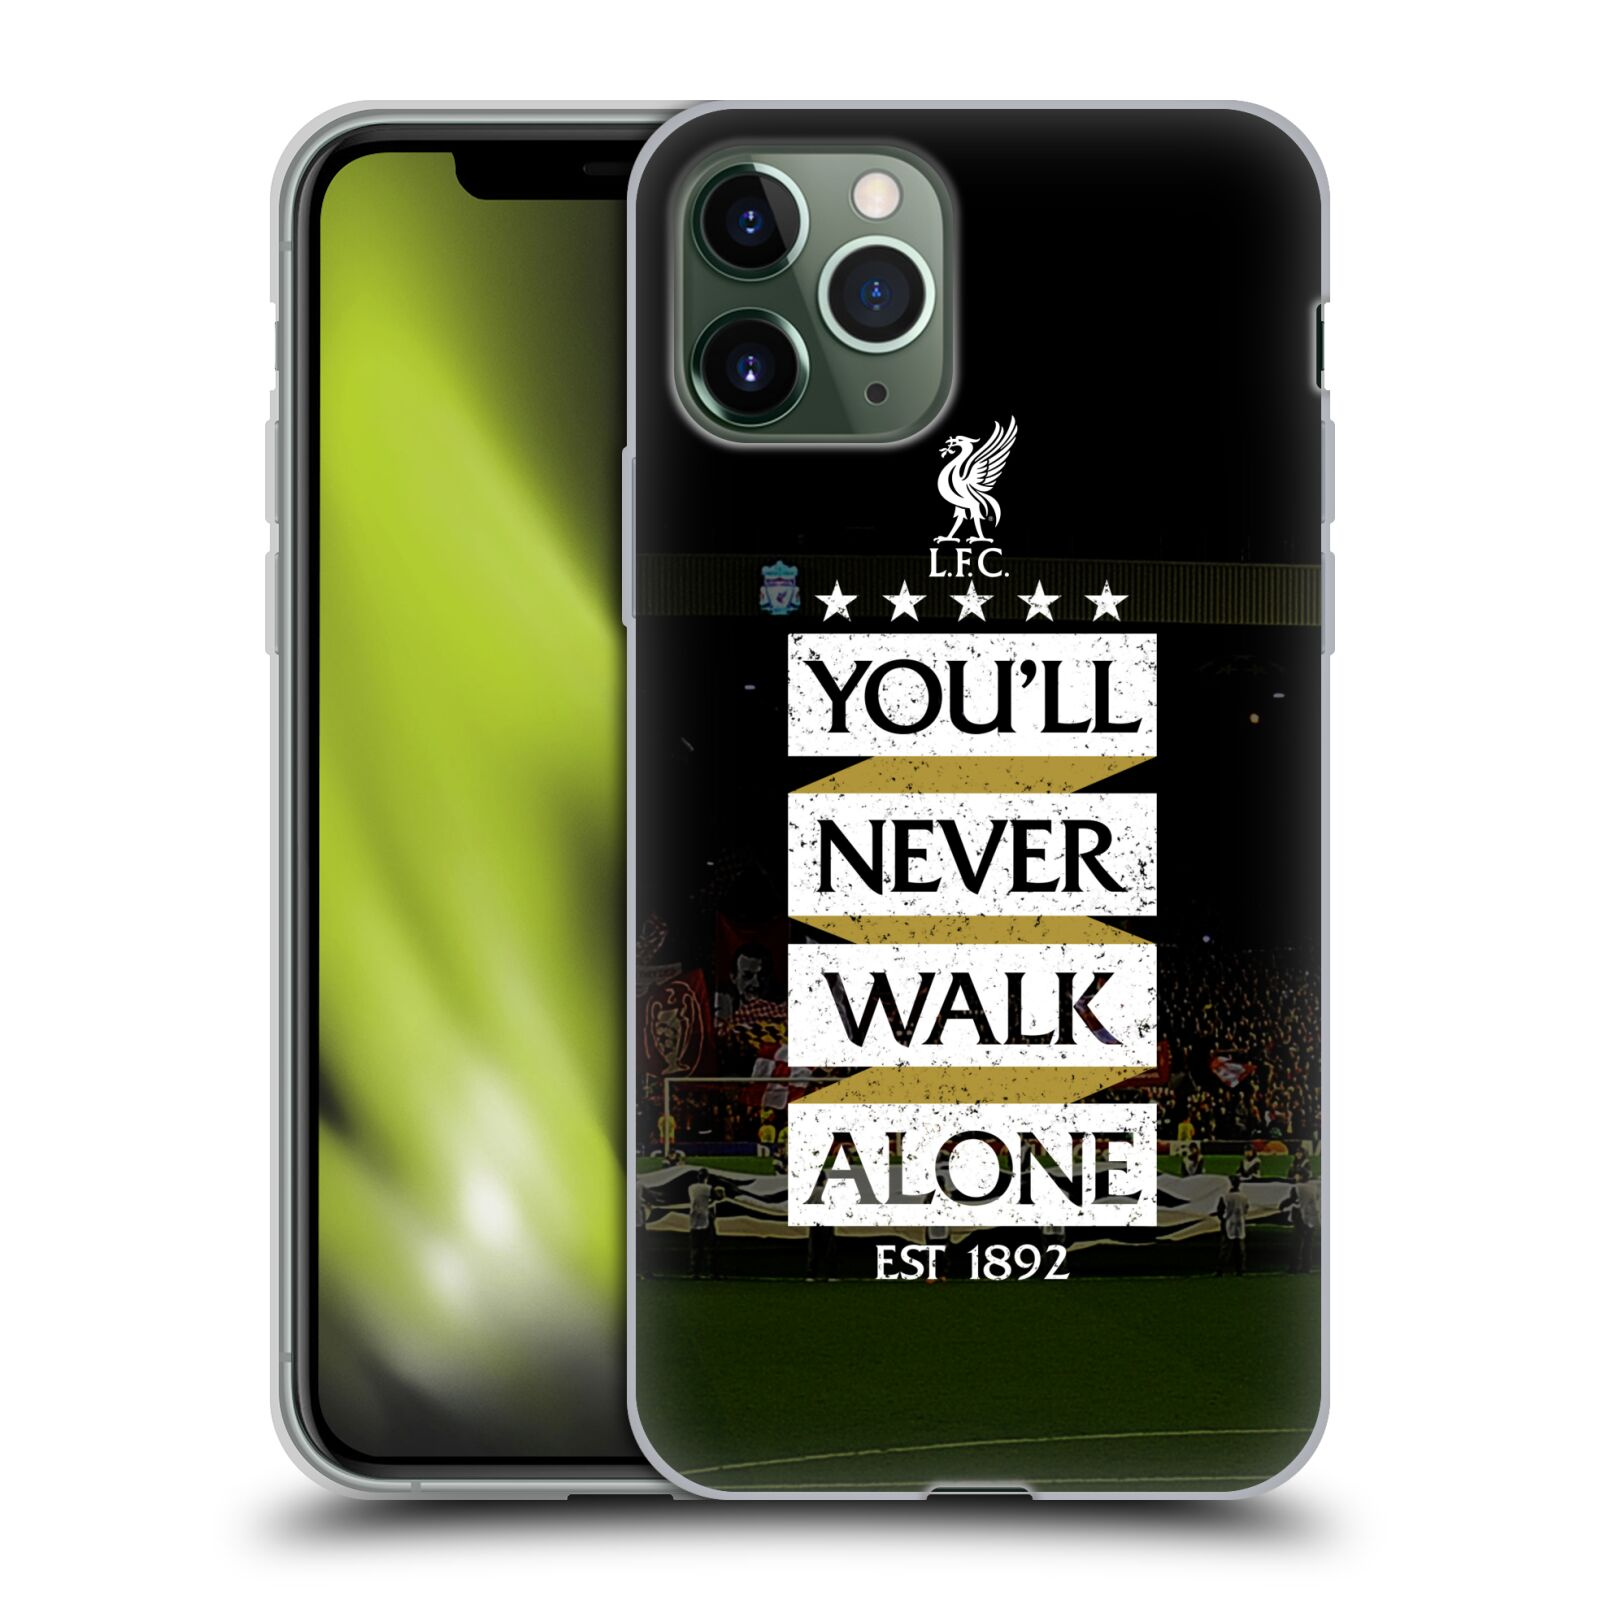 lagerfeld obaly iphone 7 plus | Silikonové pouzdro na mobil Apple iPhone 11 Pro - Head Case - LFC You'll Never Walk Alone